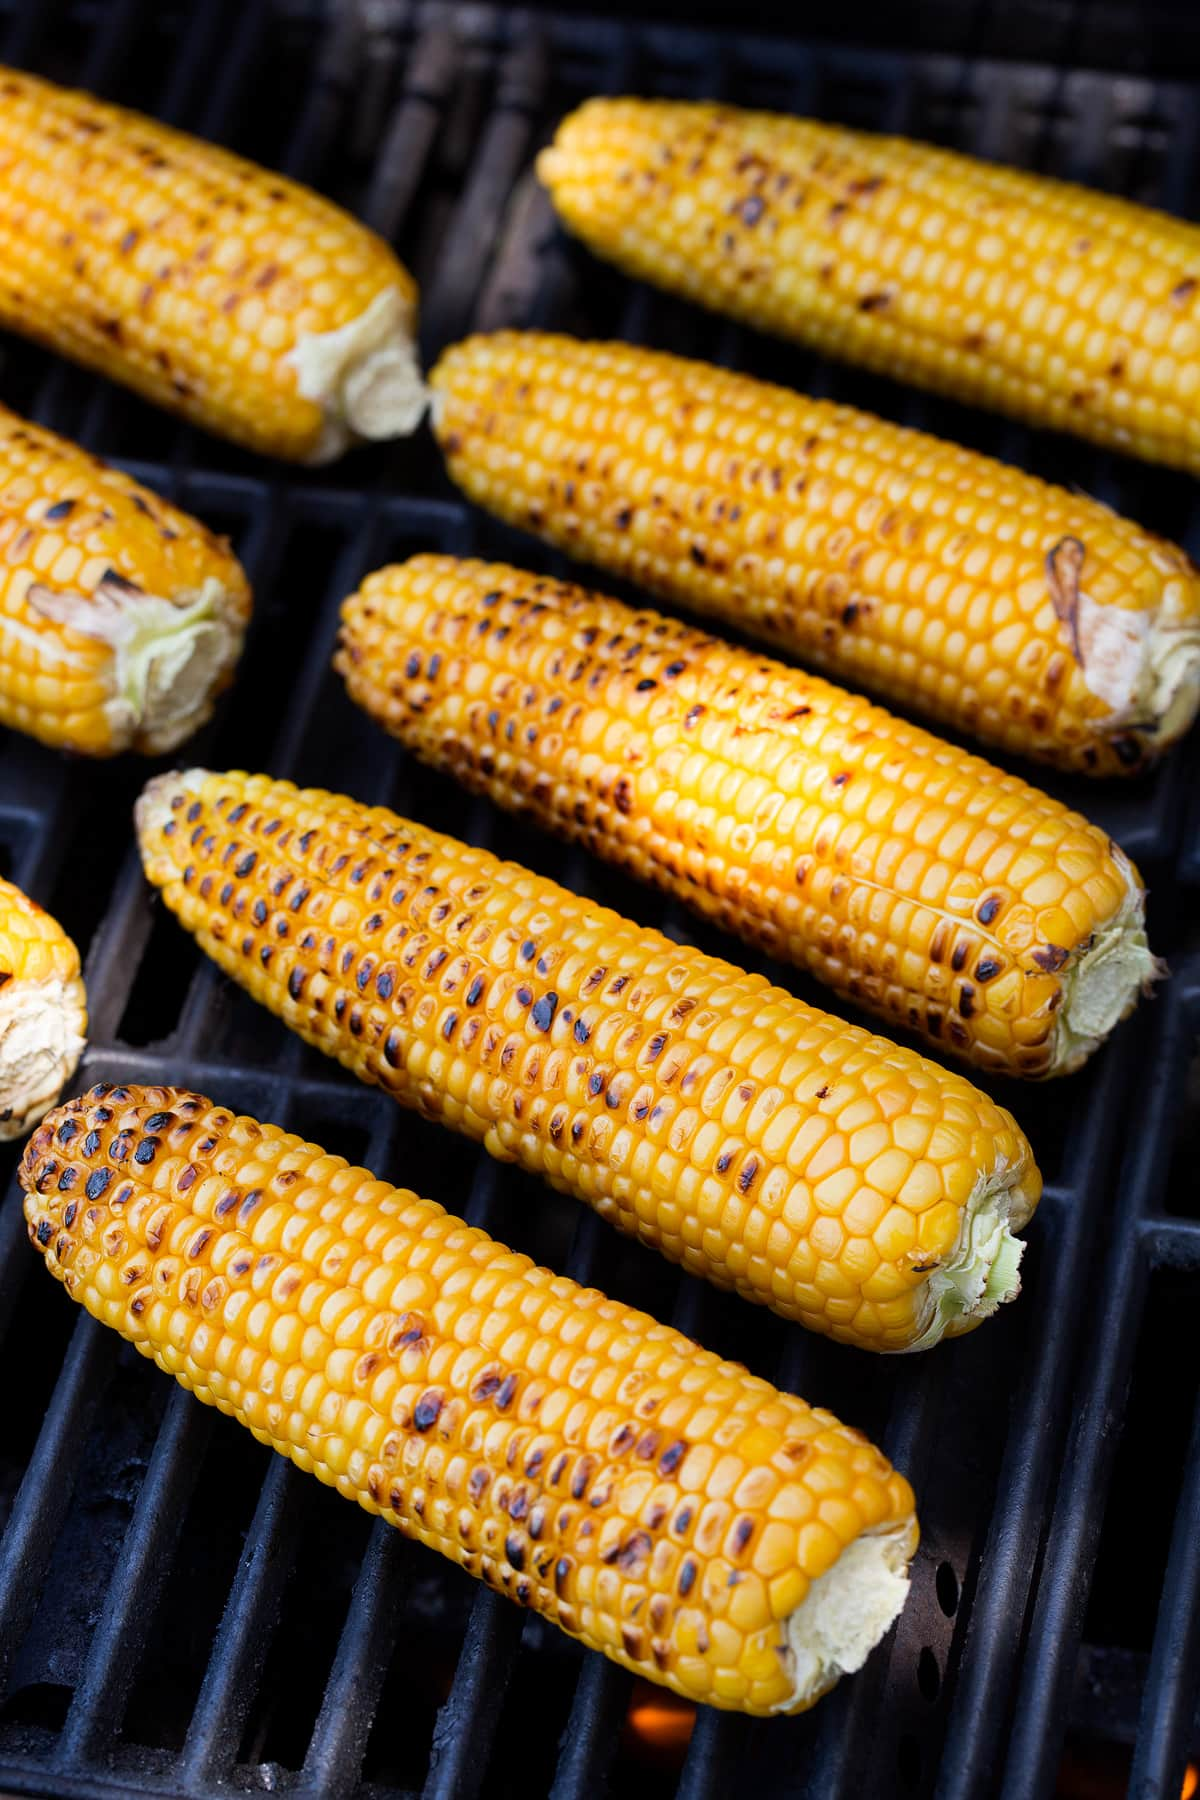 Eight ears of corn on a grill with dark char marks.